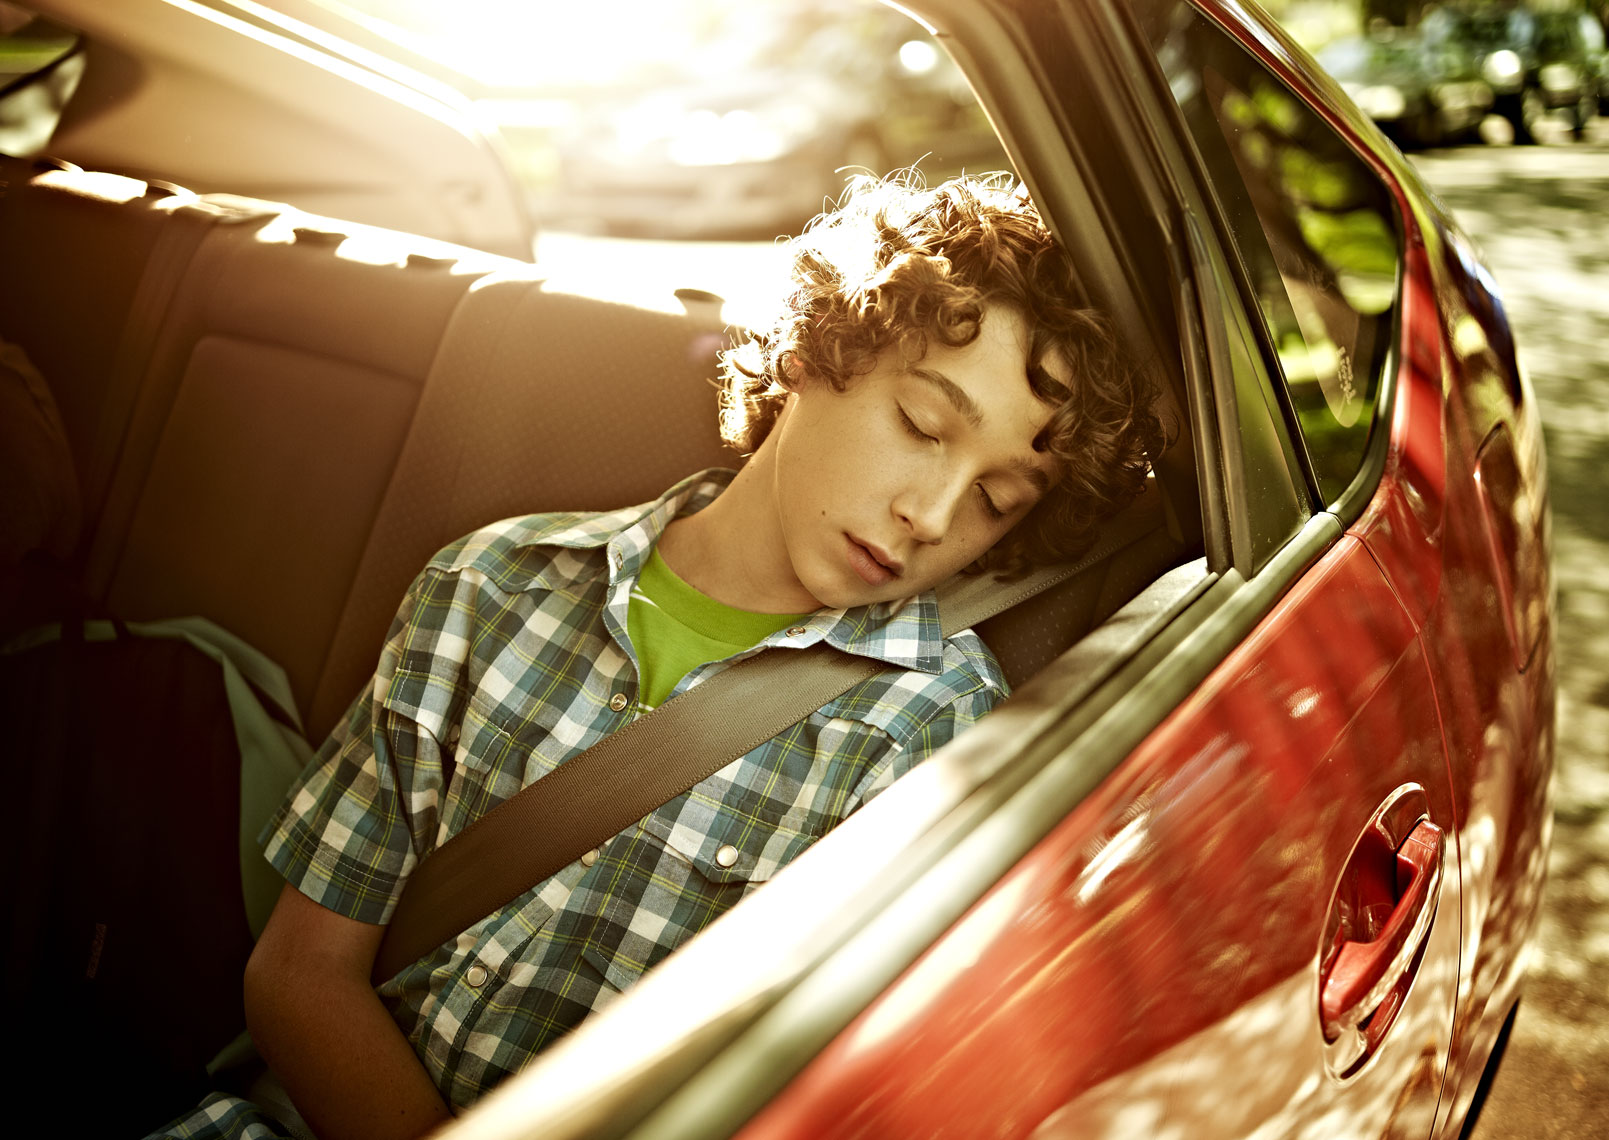 Back-to-Scool-Shot-2-Boy-Sleeping-in-Car-037